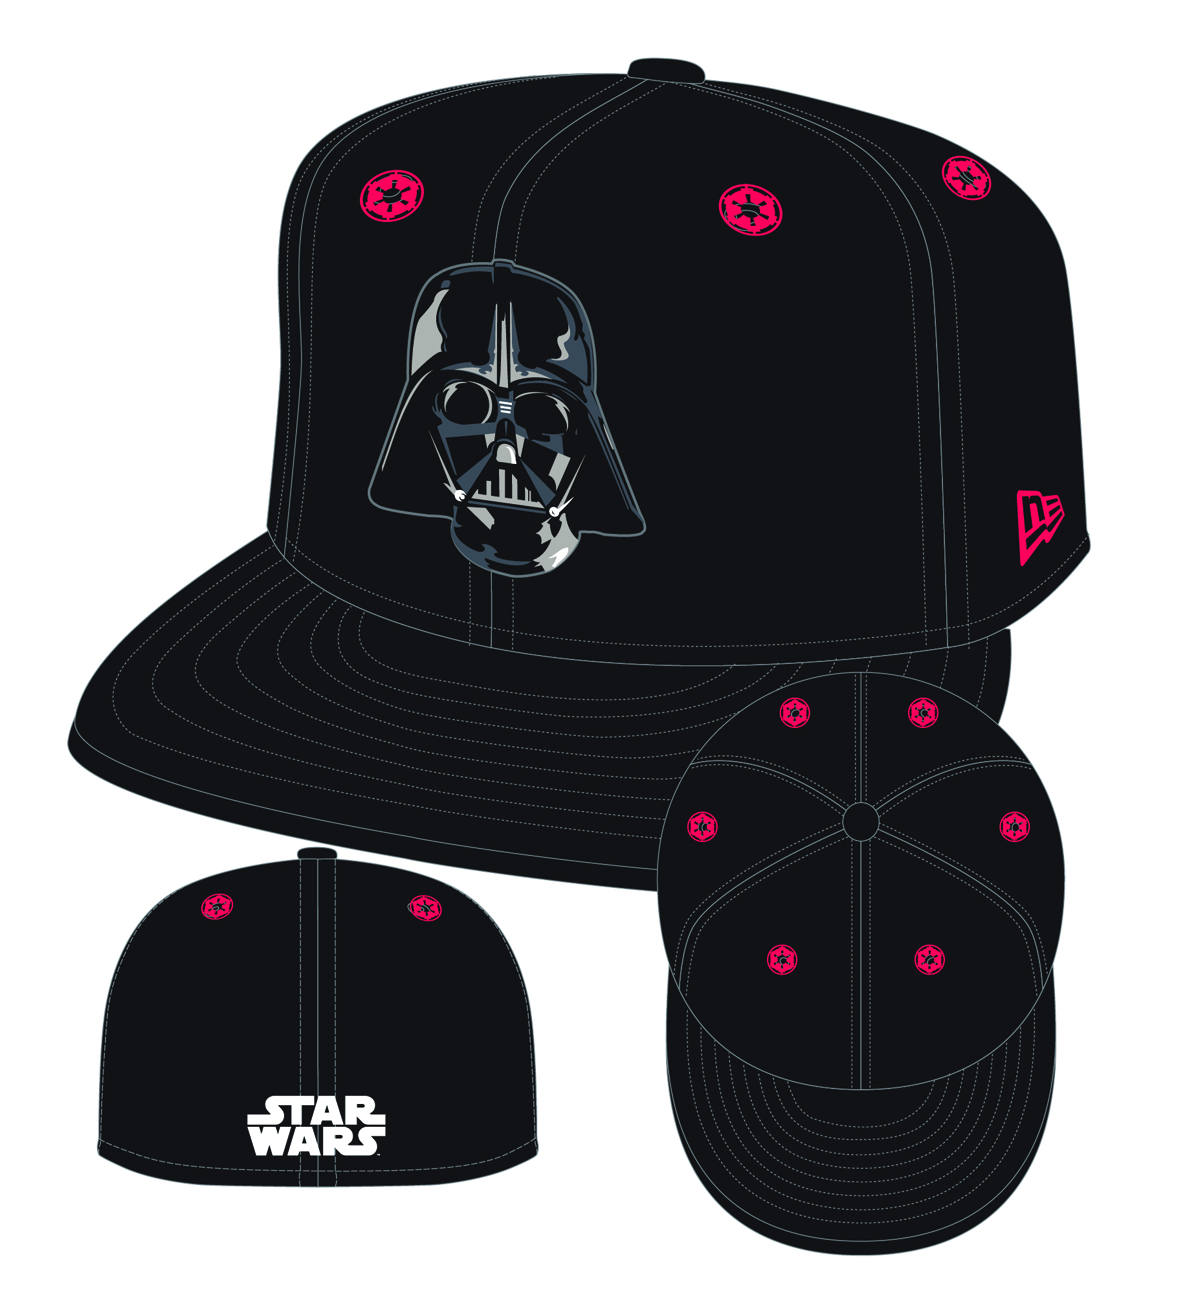 STAR WARS DARTH VADER 5950 STARGAZER FITTED CAP SZ 7 3/8